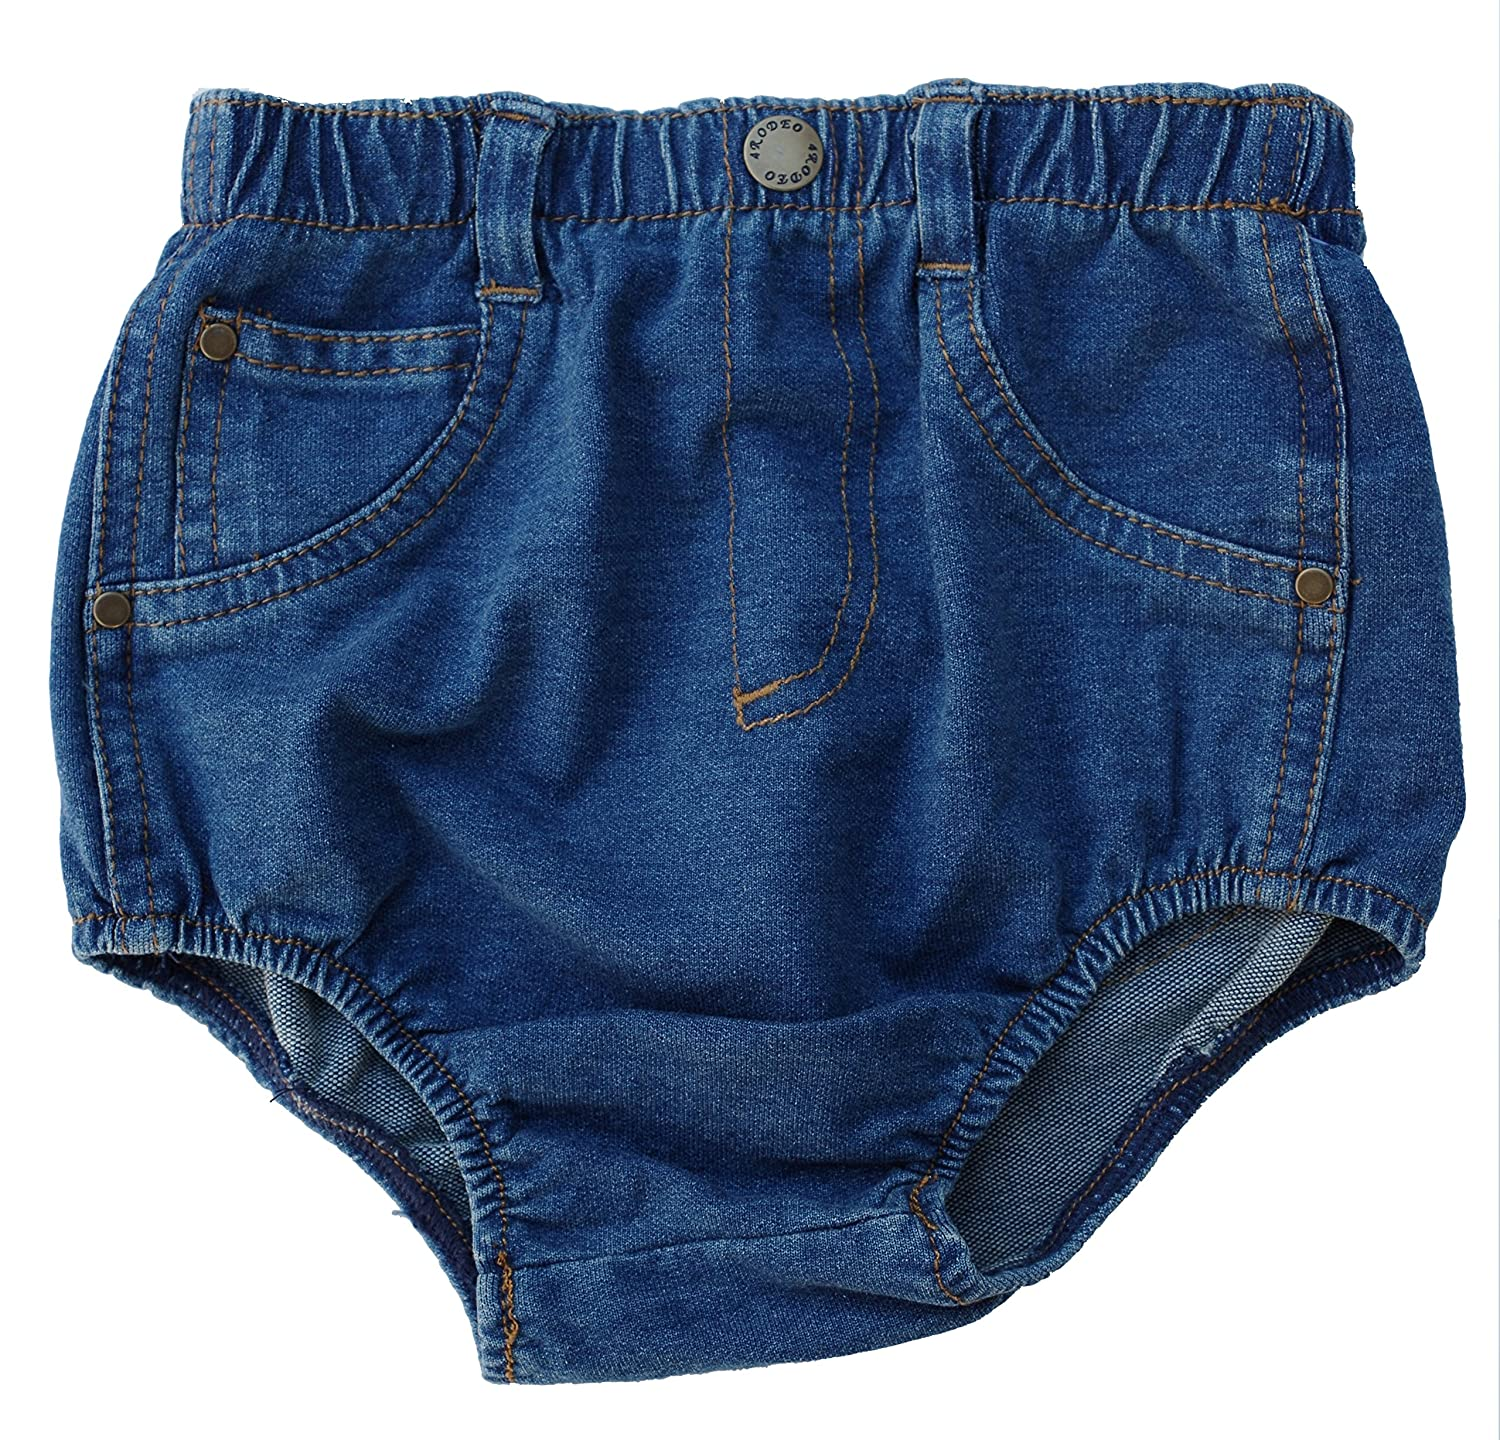 4Rodeo Denim Diaper Cover